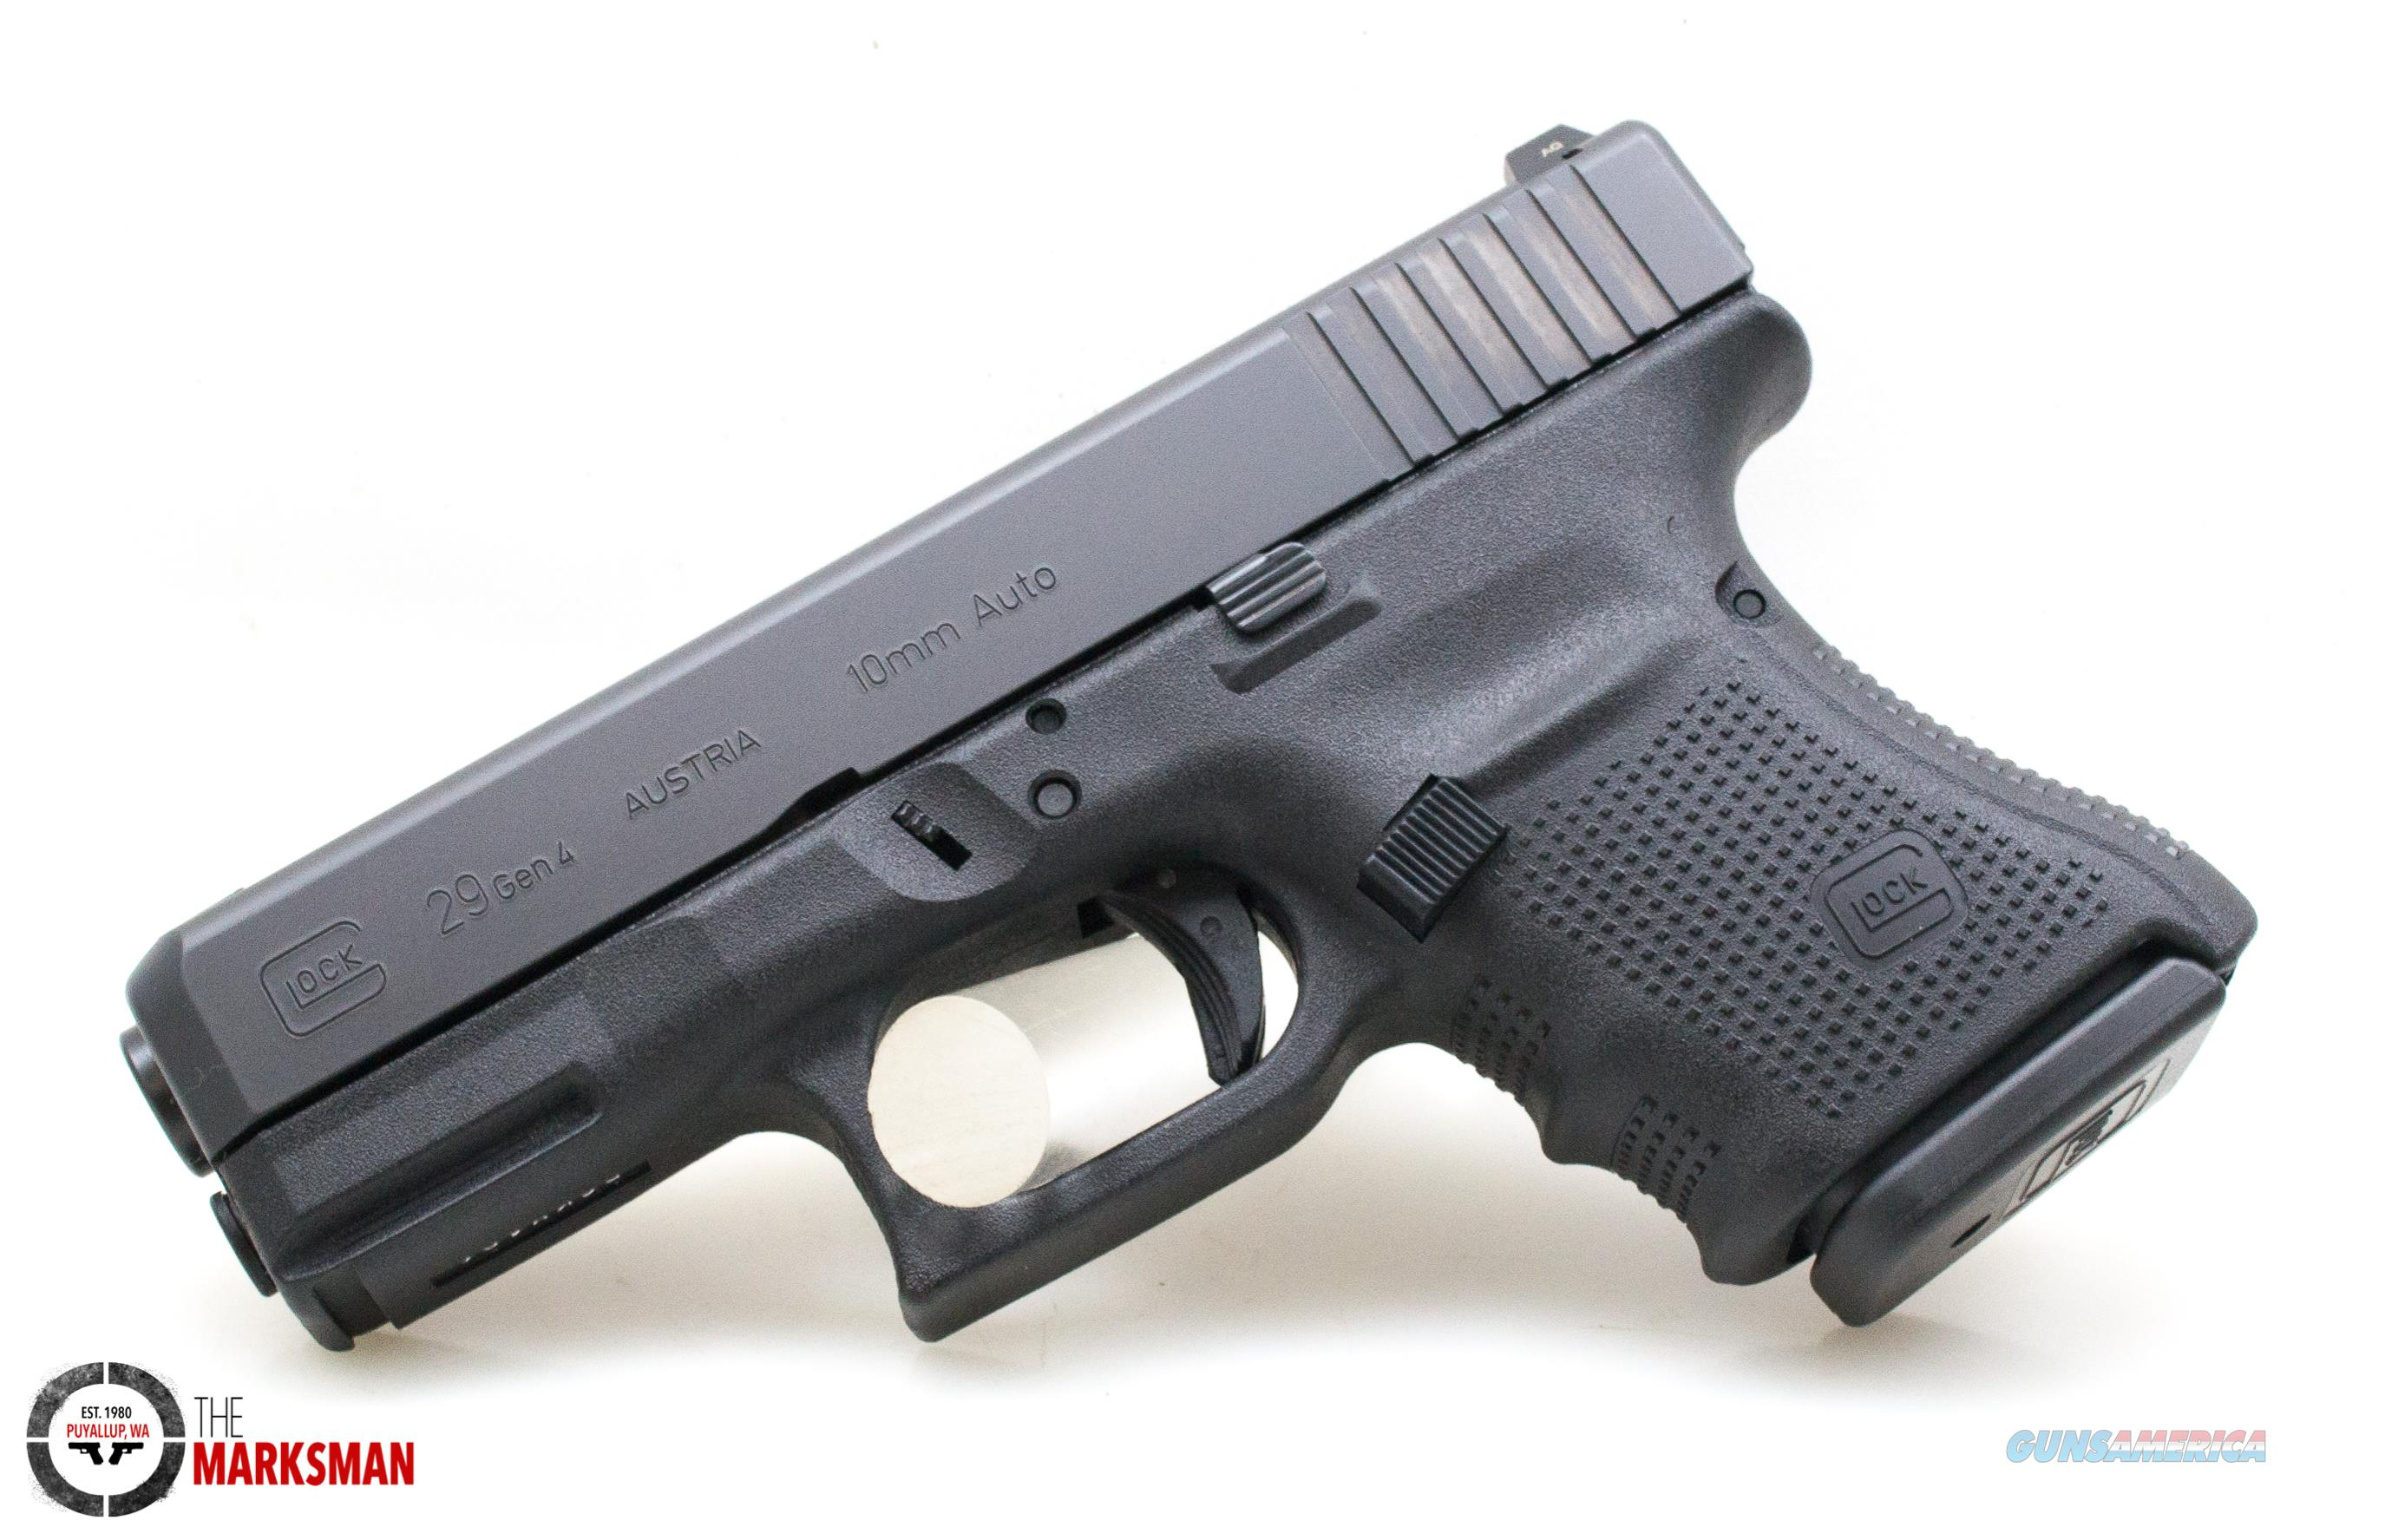 Glock 29 Generation 4, 10mm, NS, Austria Made Model   Guns > Pistols > Glock Pistols > 29/30/36